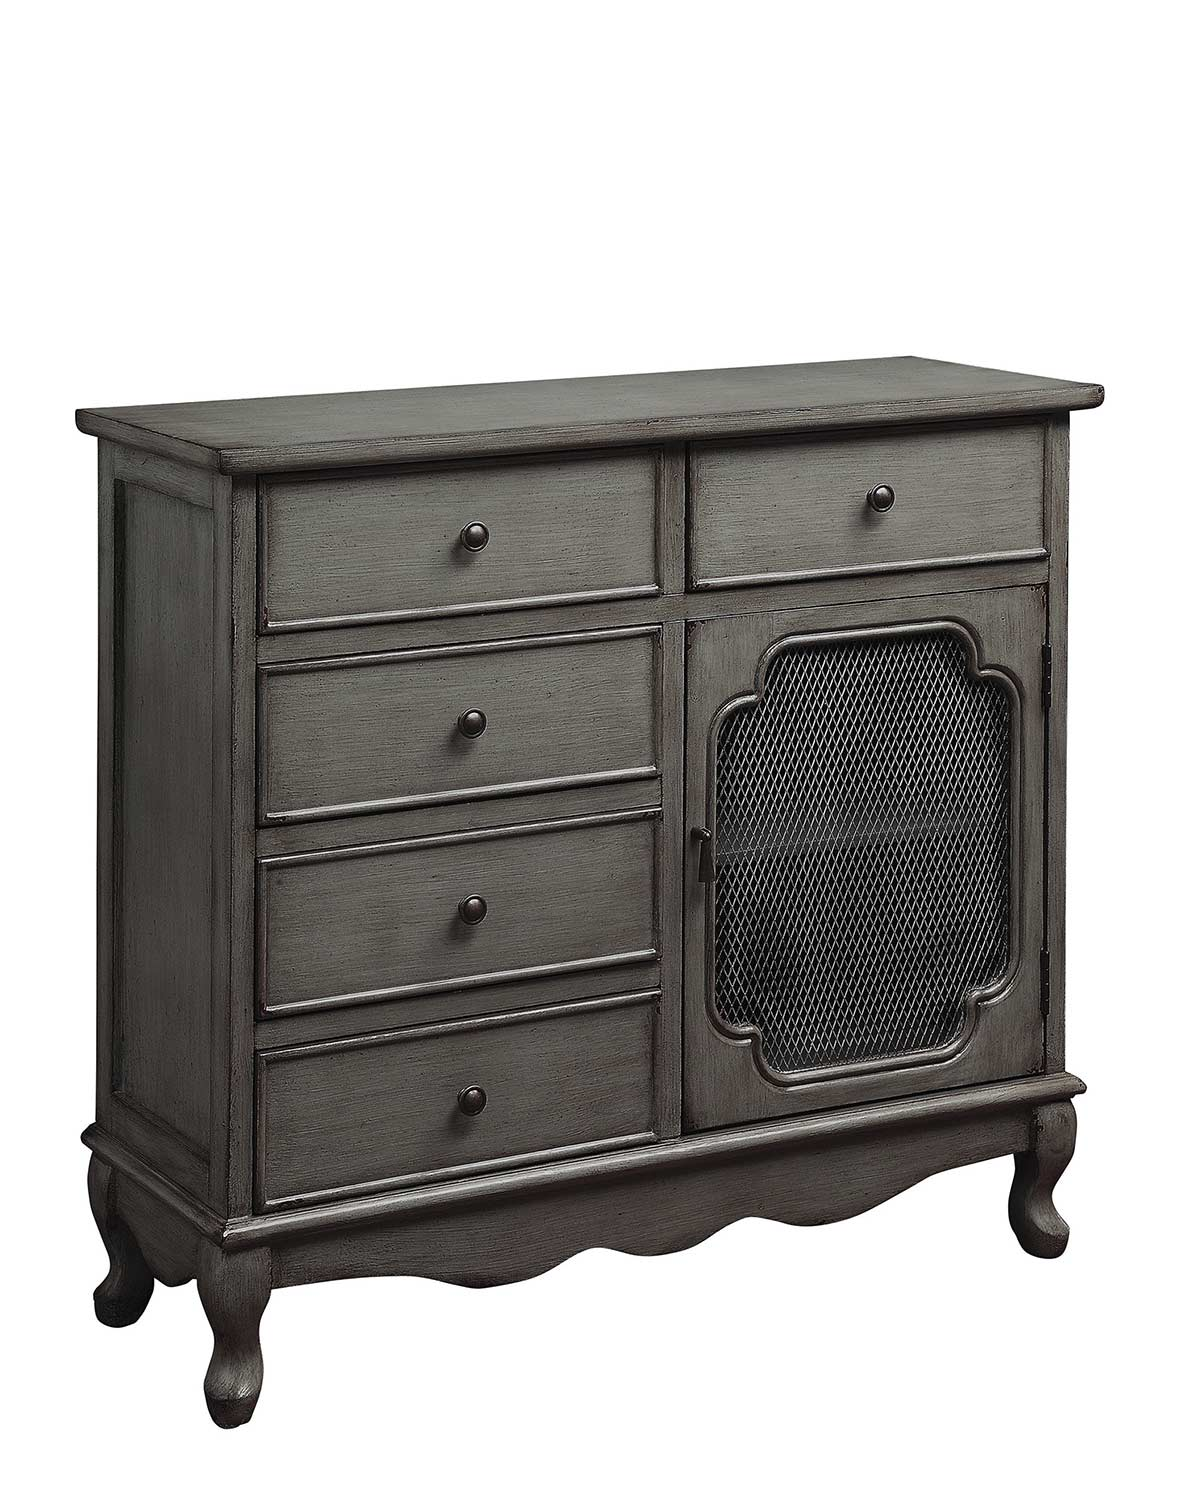 Coaster 950630 Accent Cabinet - Distressed Grey